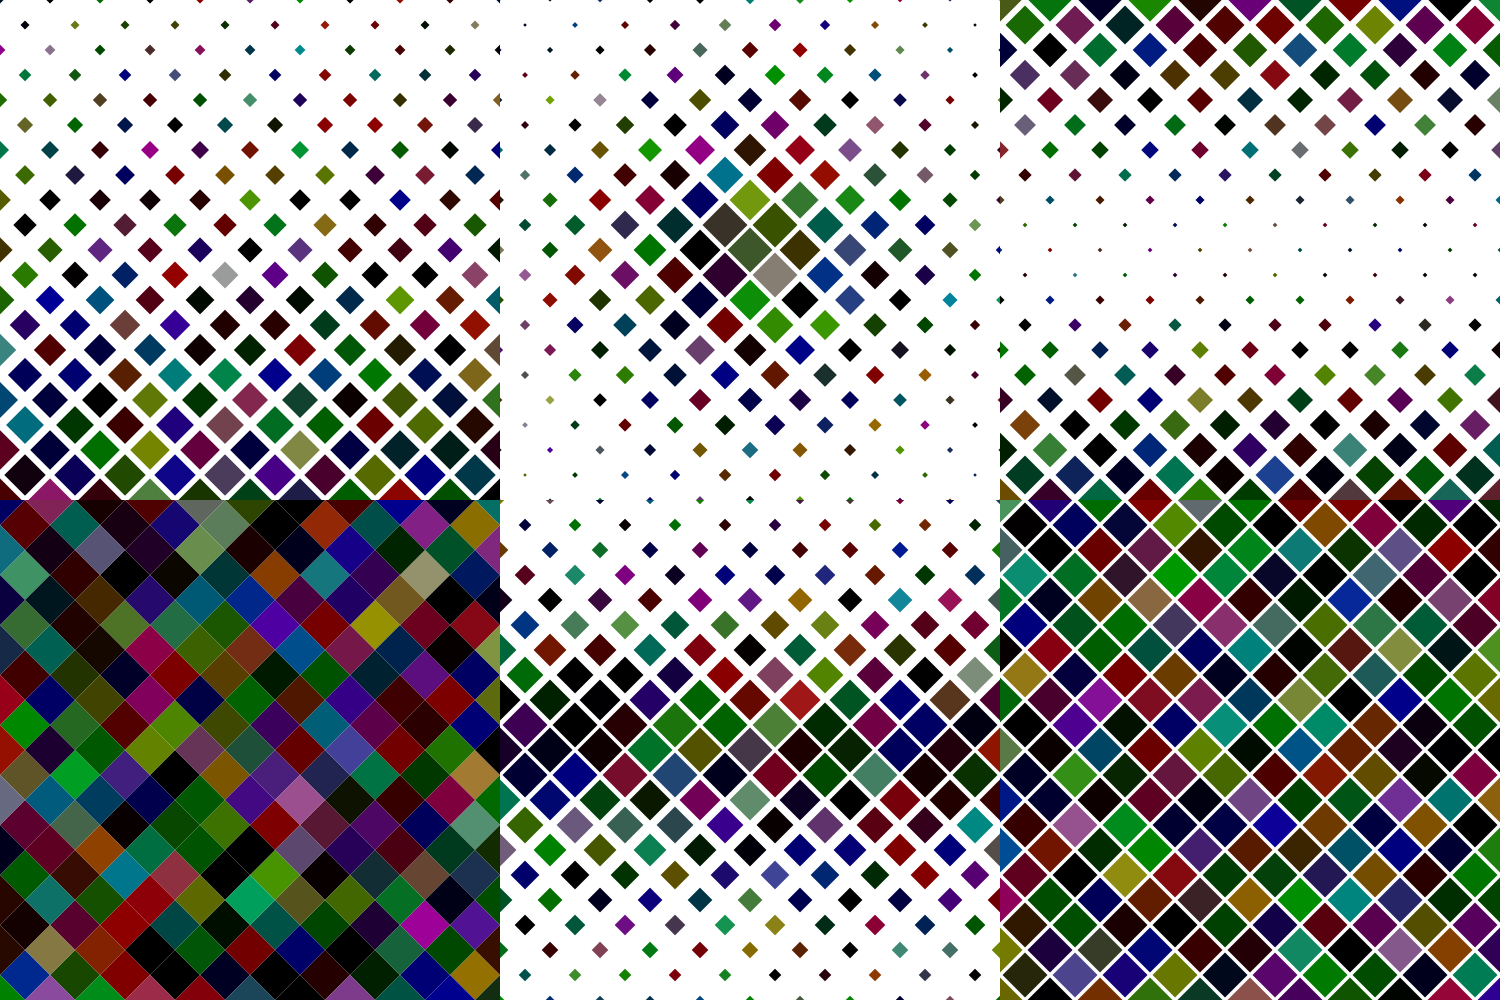 24 Multicolored Square Patterns (AI, EPS, JPG 5000x5000) example image 5